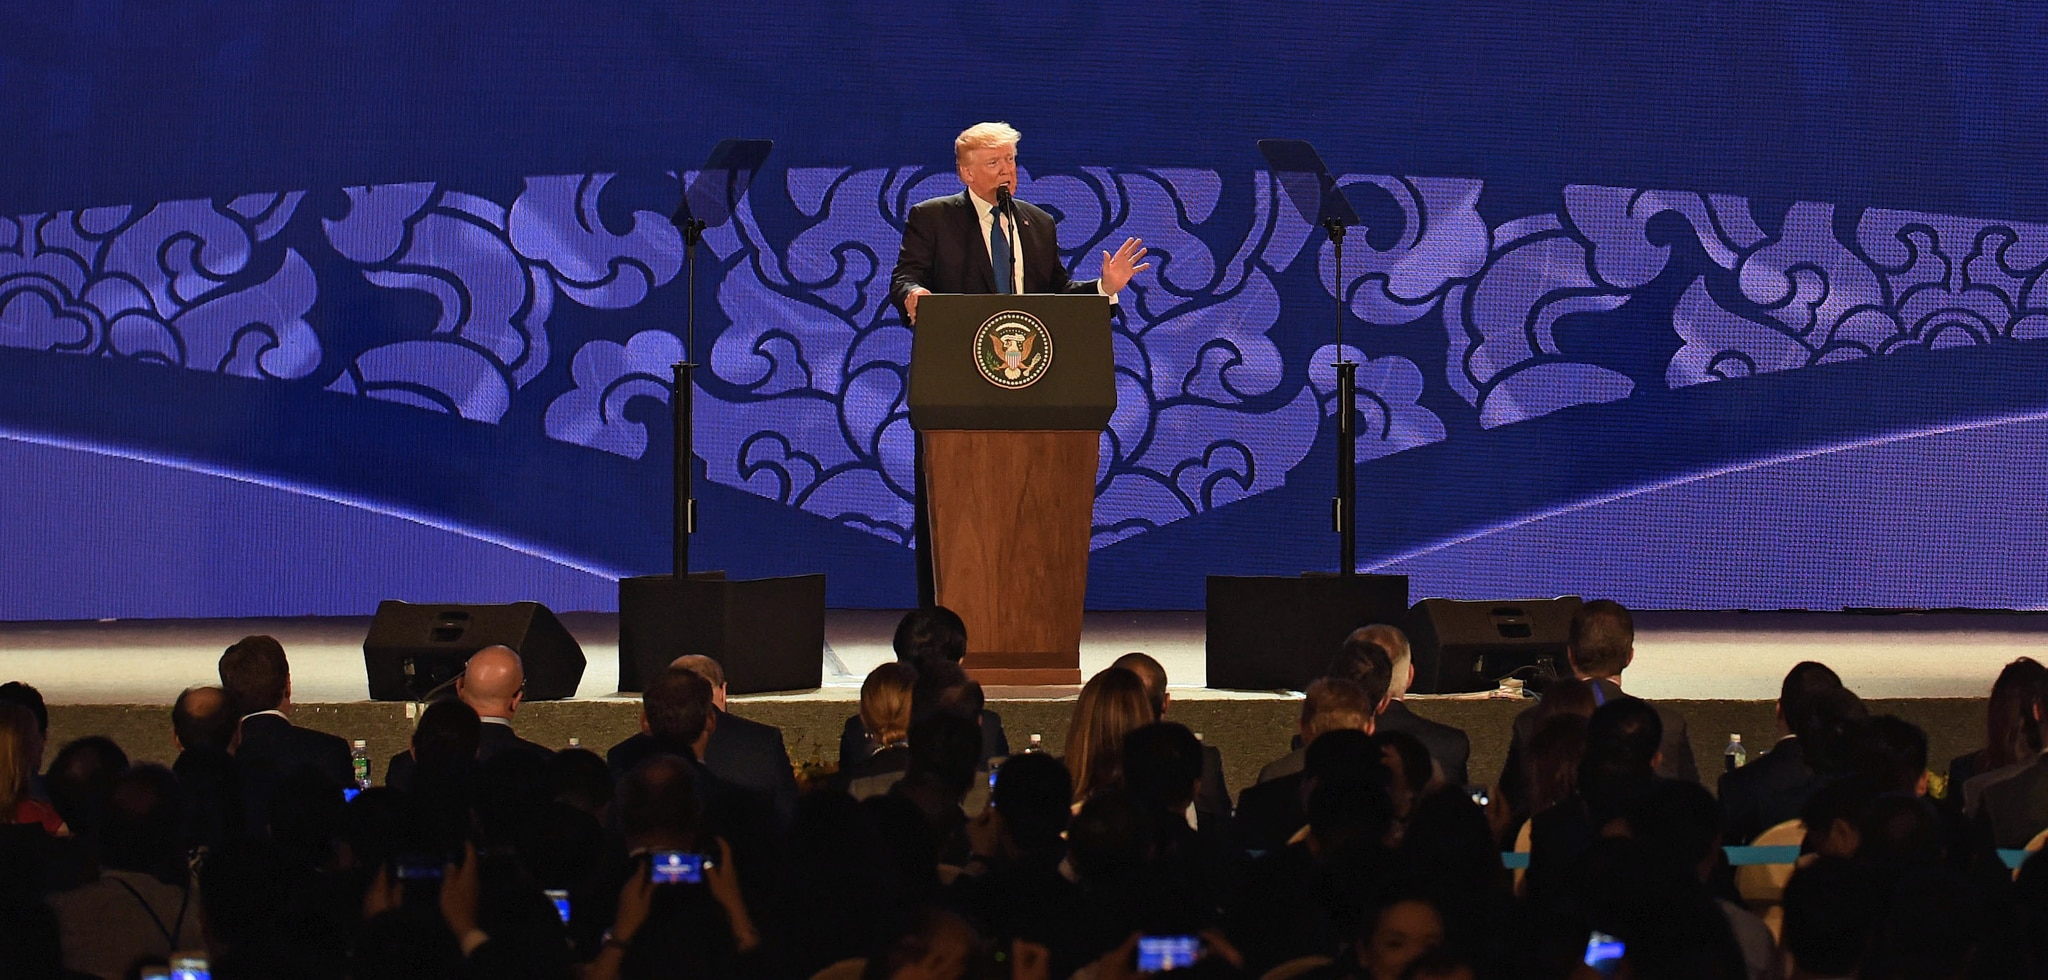 President Trump at lectern speaking in front of a group (© Anthony Wallace/AP Images)